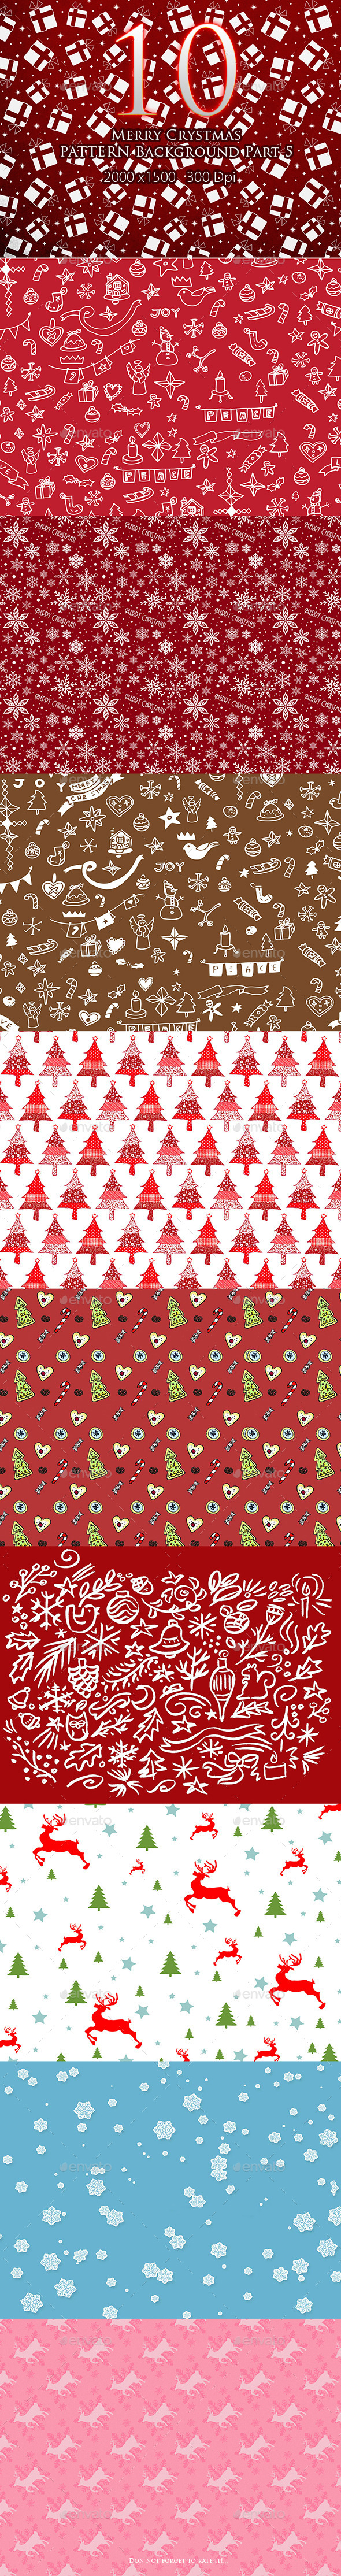 10 Merry Christmas Pattern Background Part 5